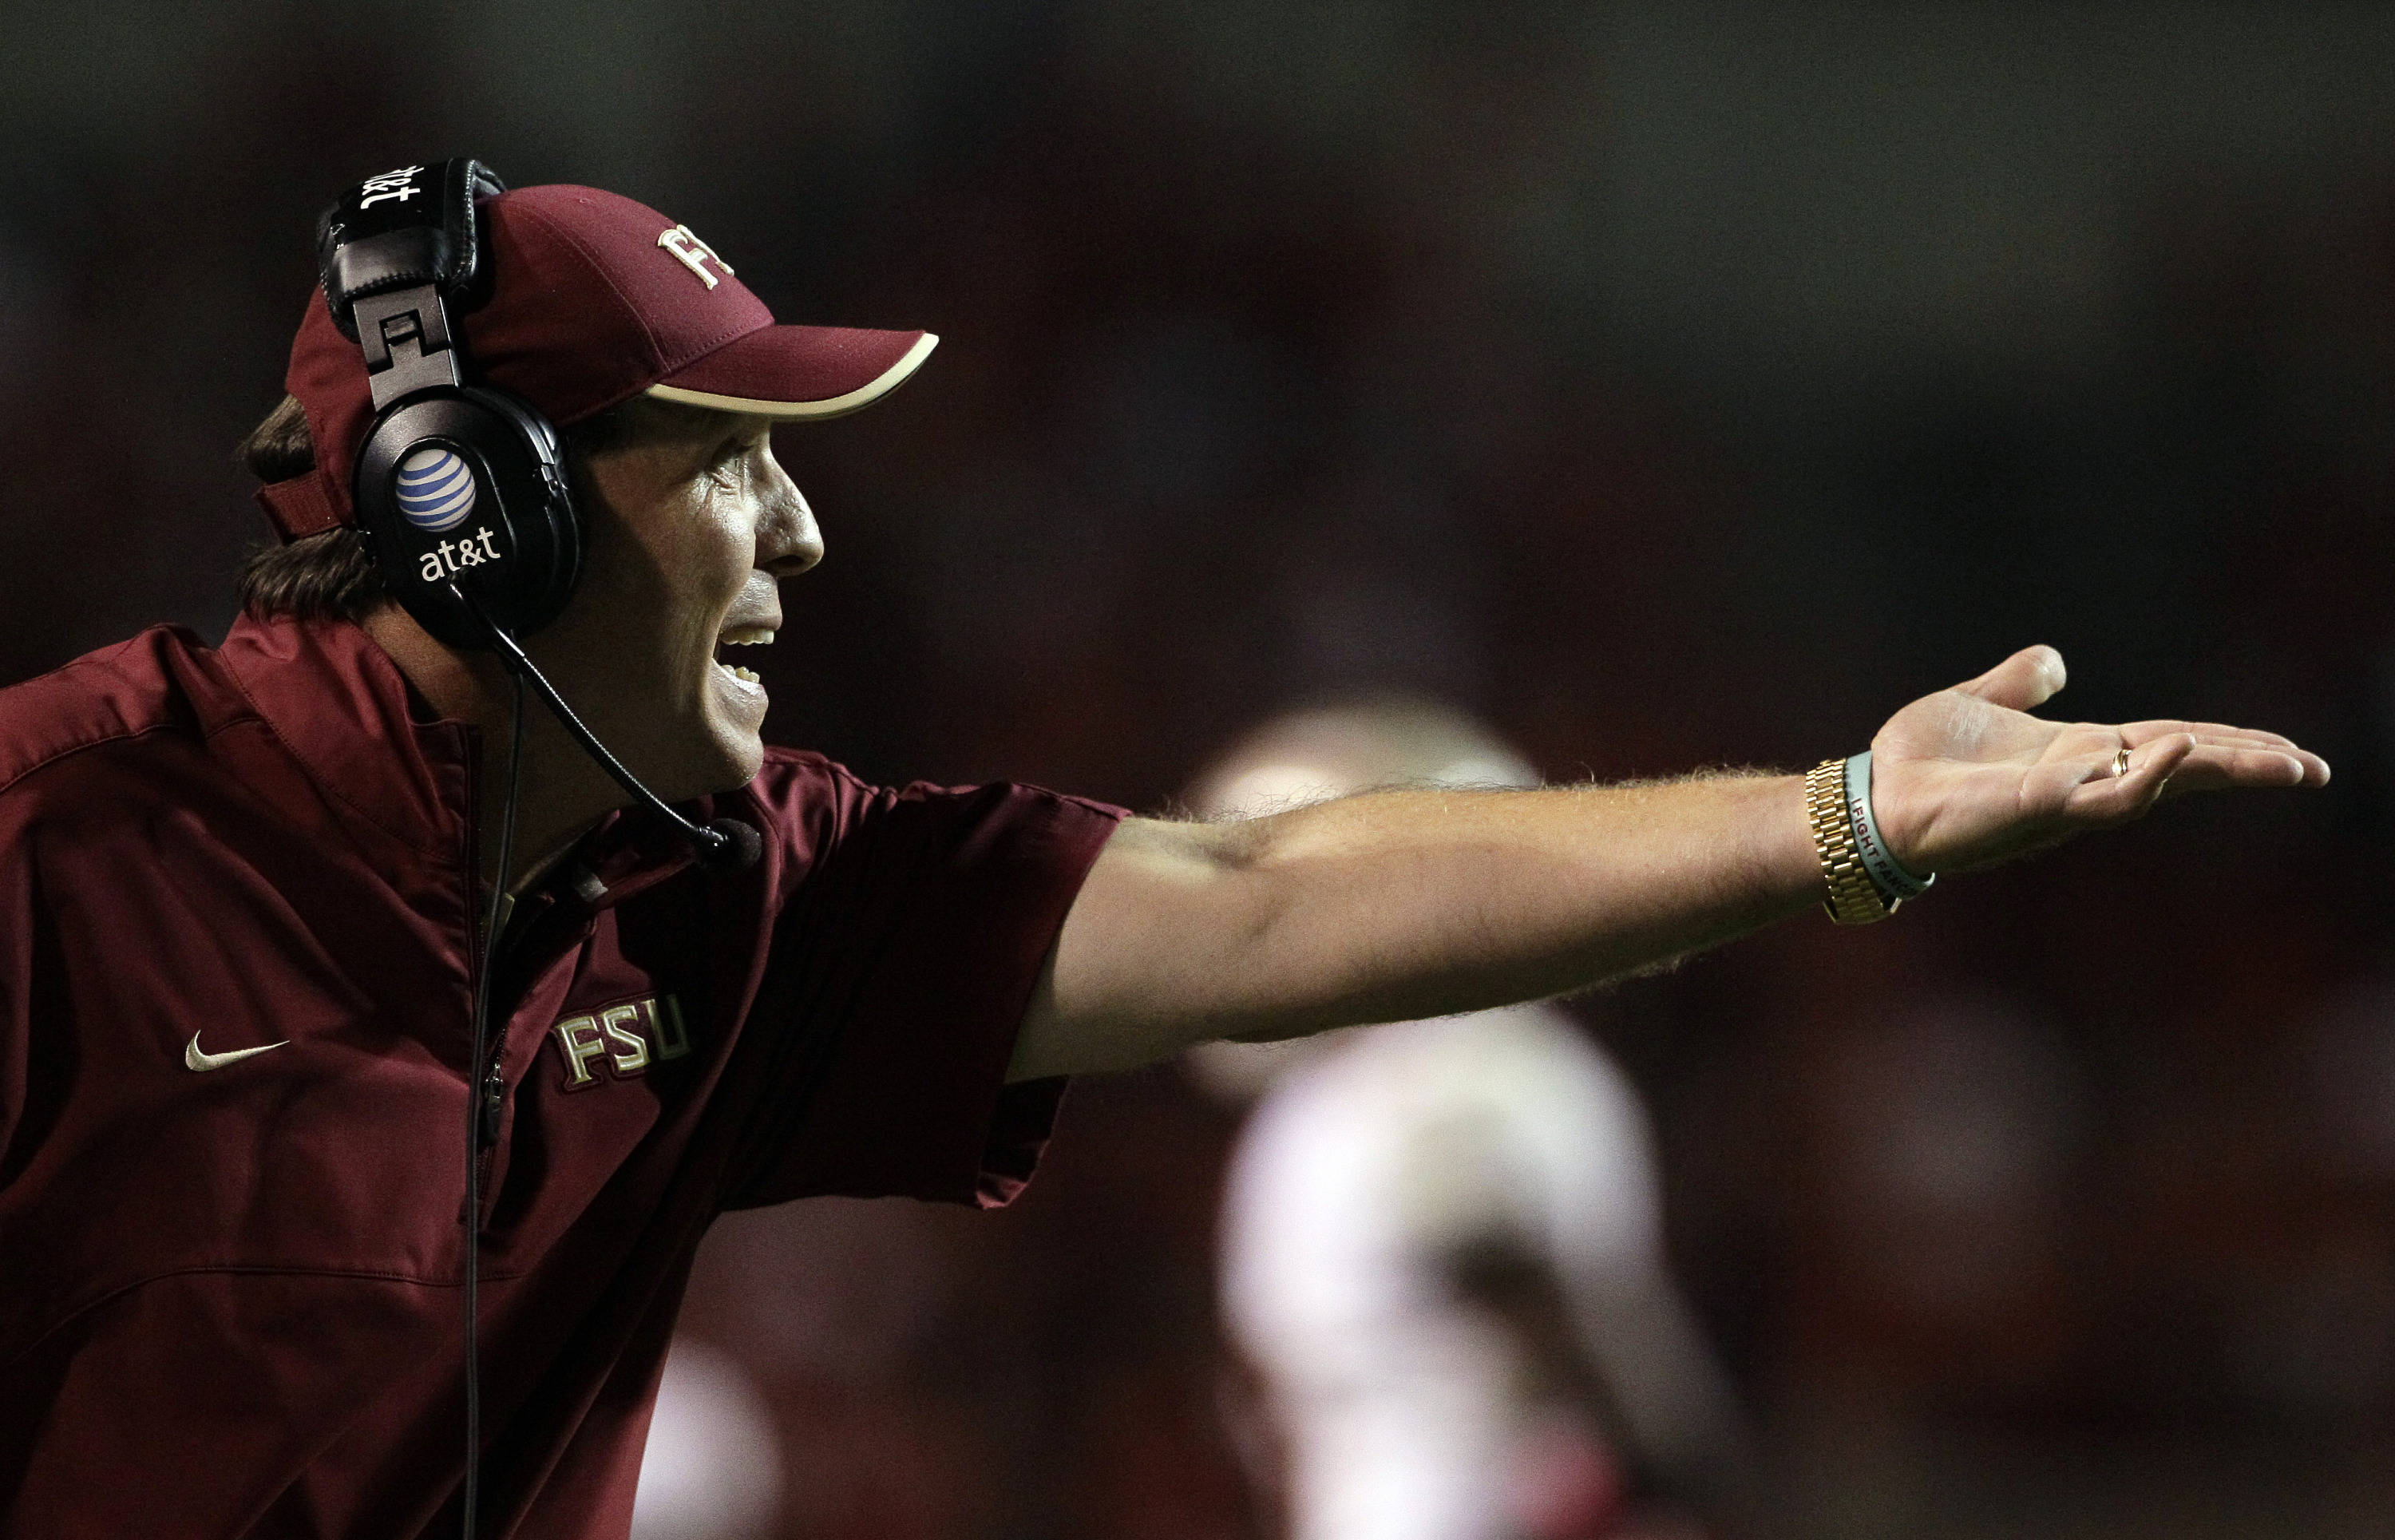 Florida State coach Jimbo Fisher gestures during the second half. (AP Photo/Gerry Broome)